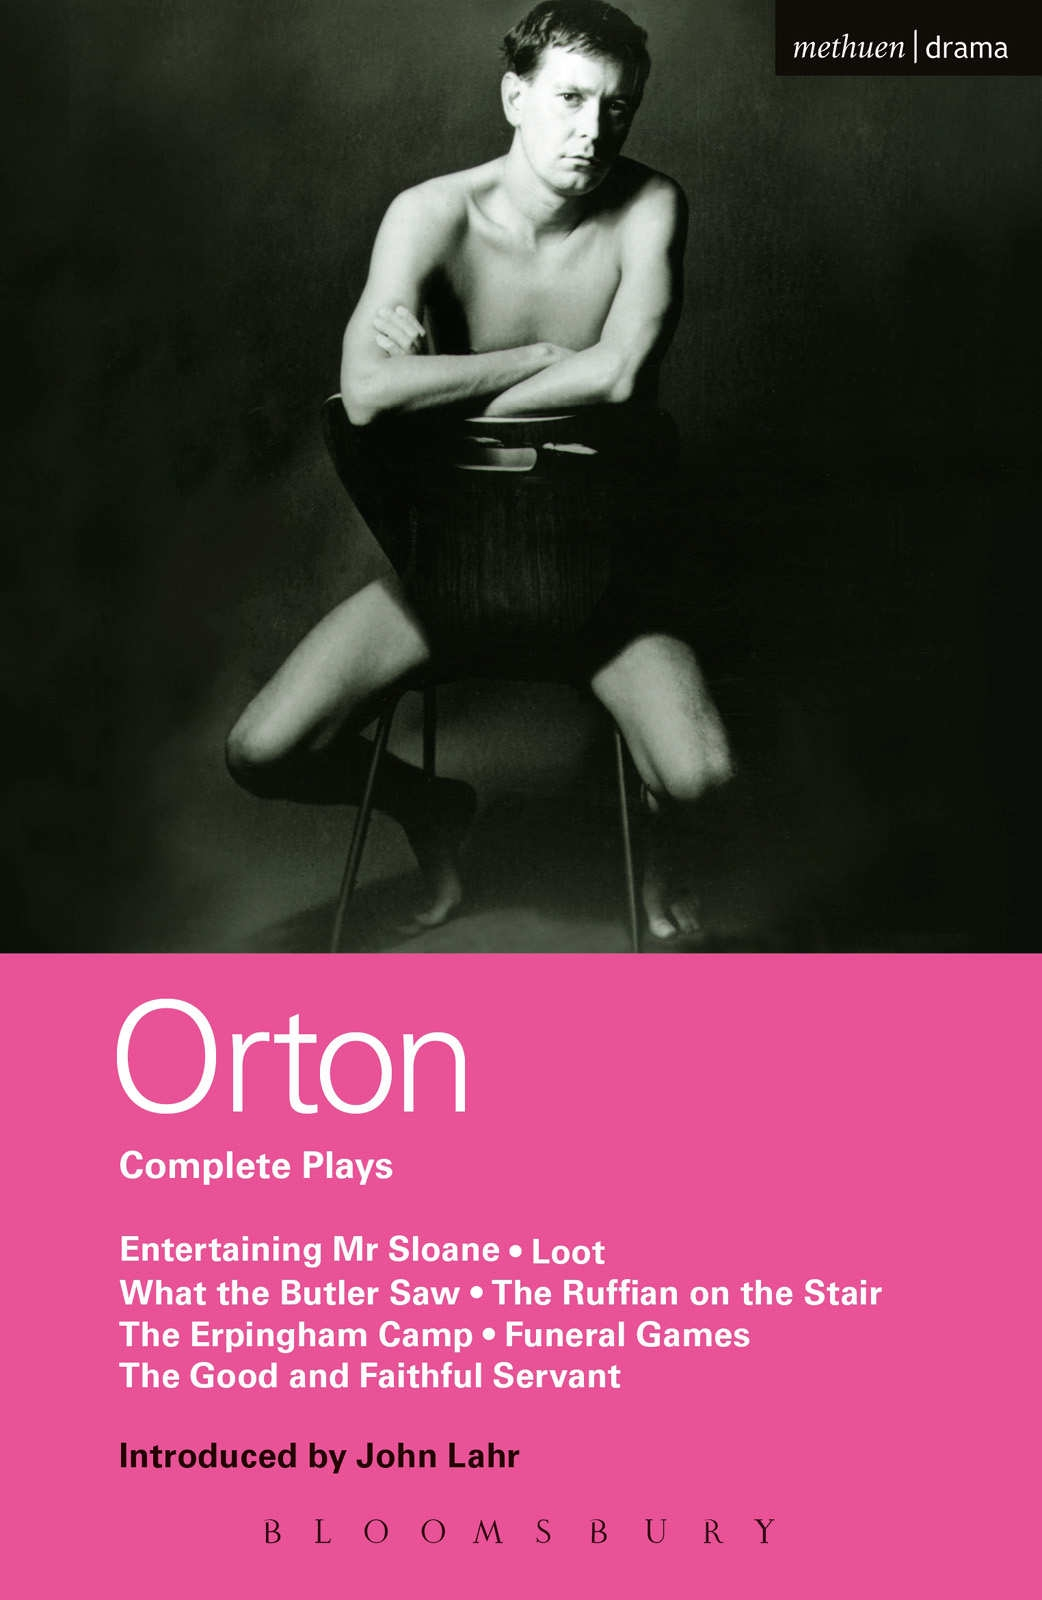 Buy Orton: Complete Plays